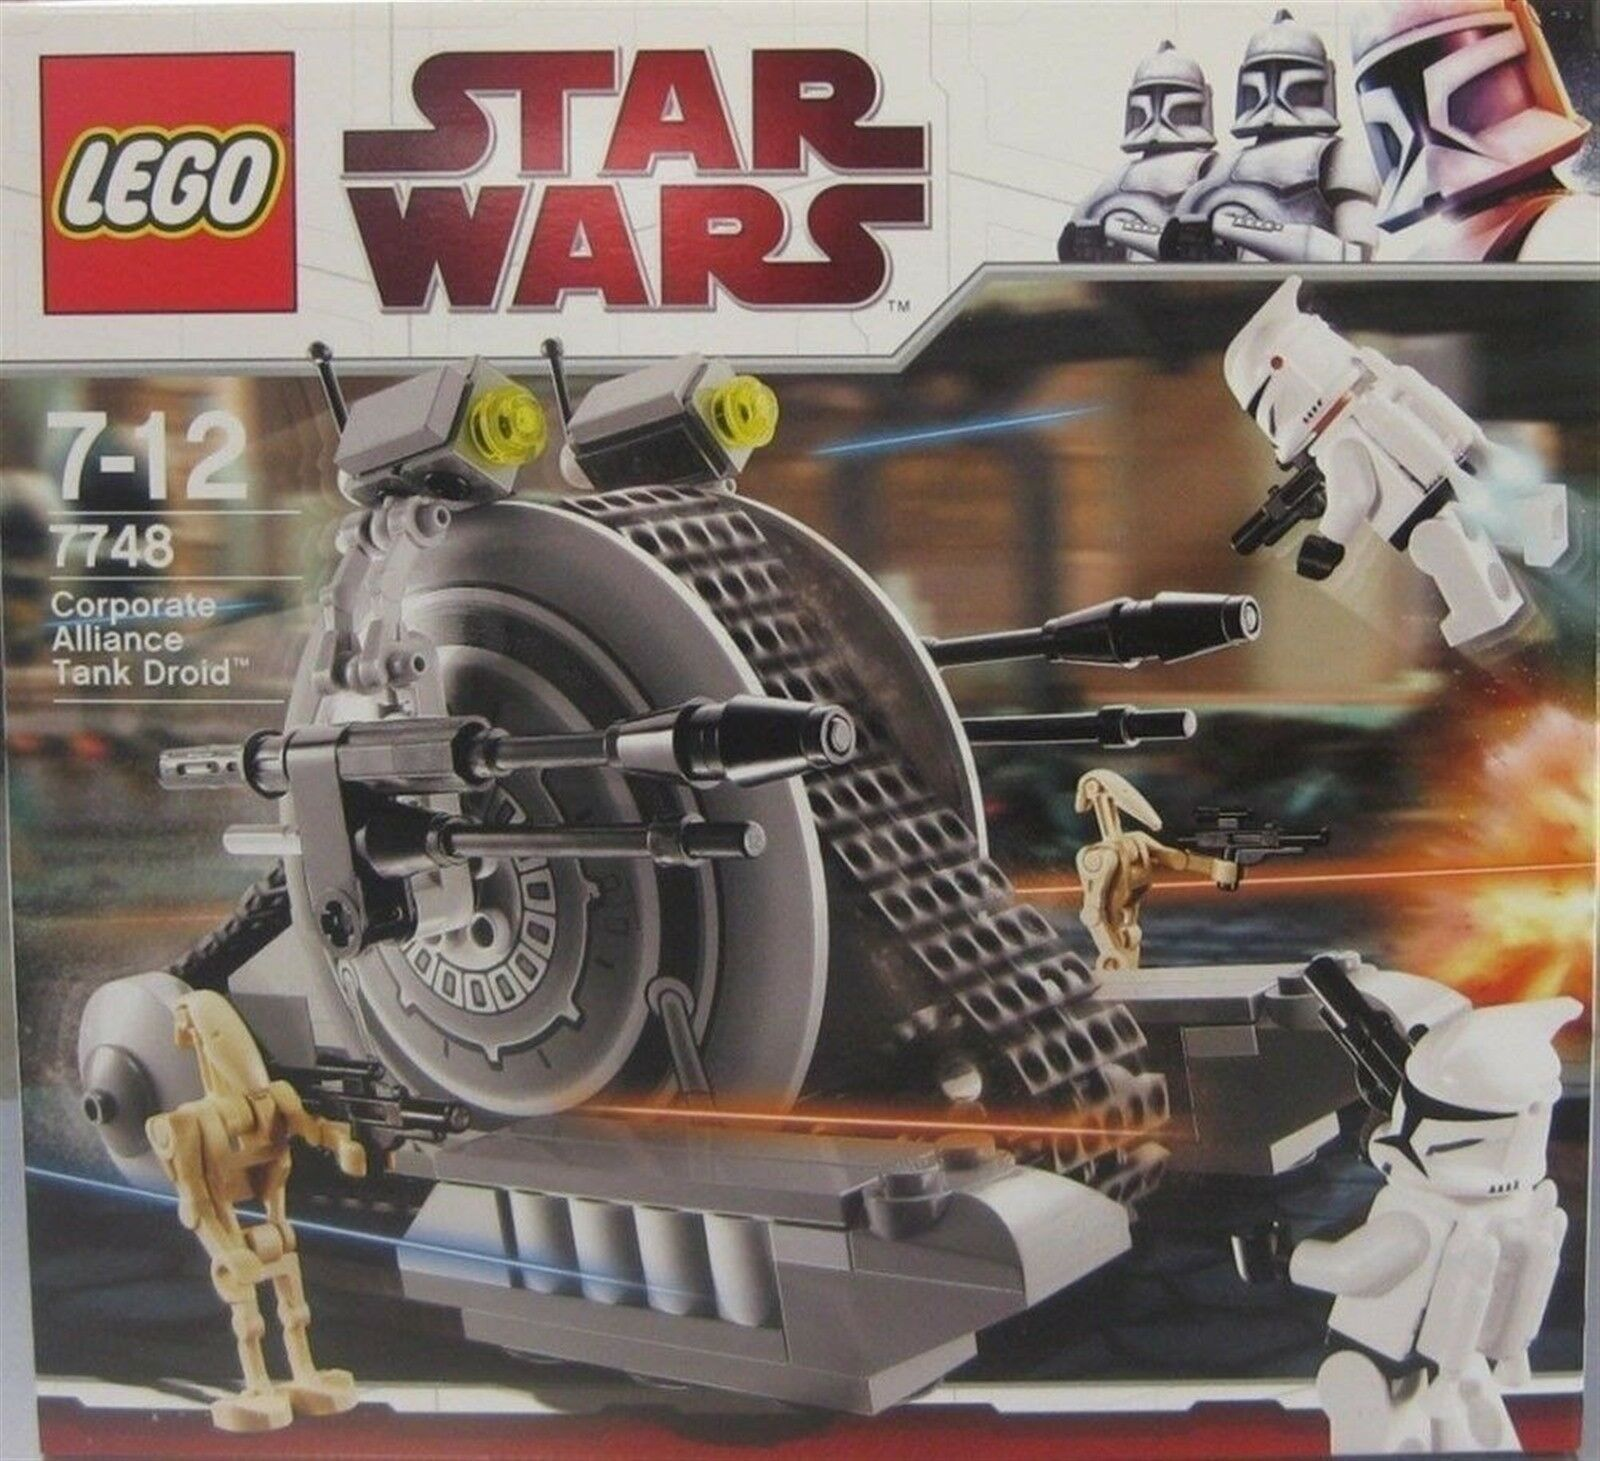 LEGO STAR WARS  7748 CORPORATE ALLIANCE TANK DROID DATED 2009 NRFB